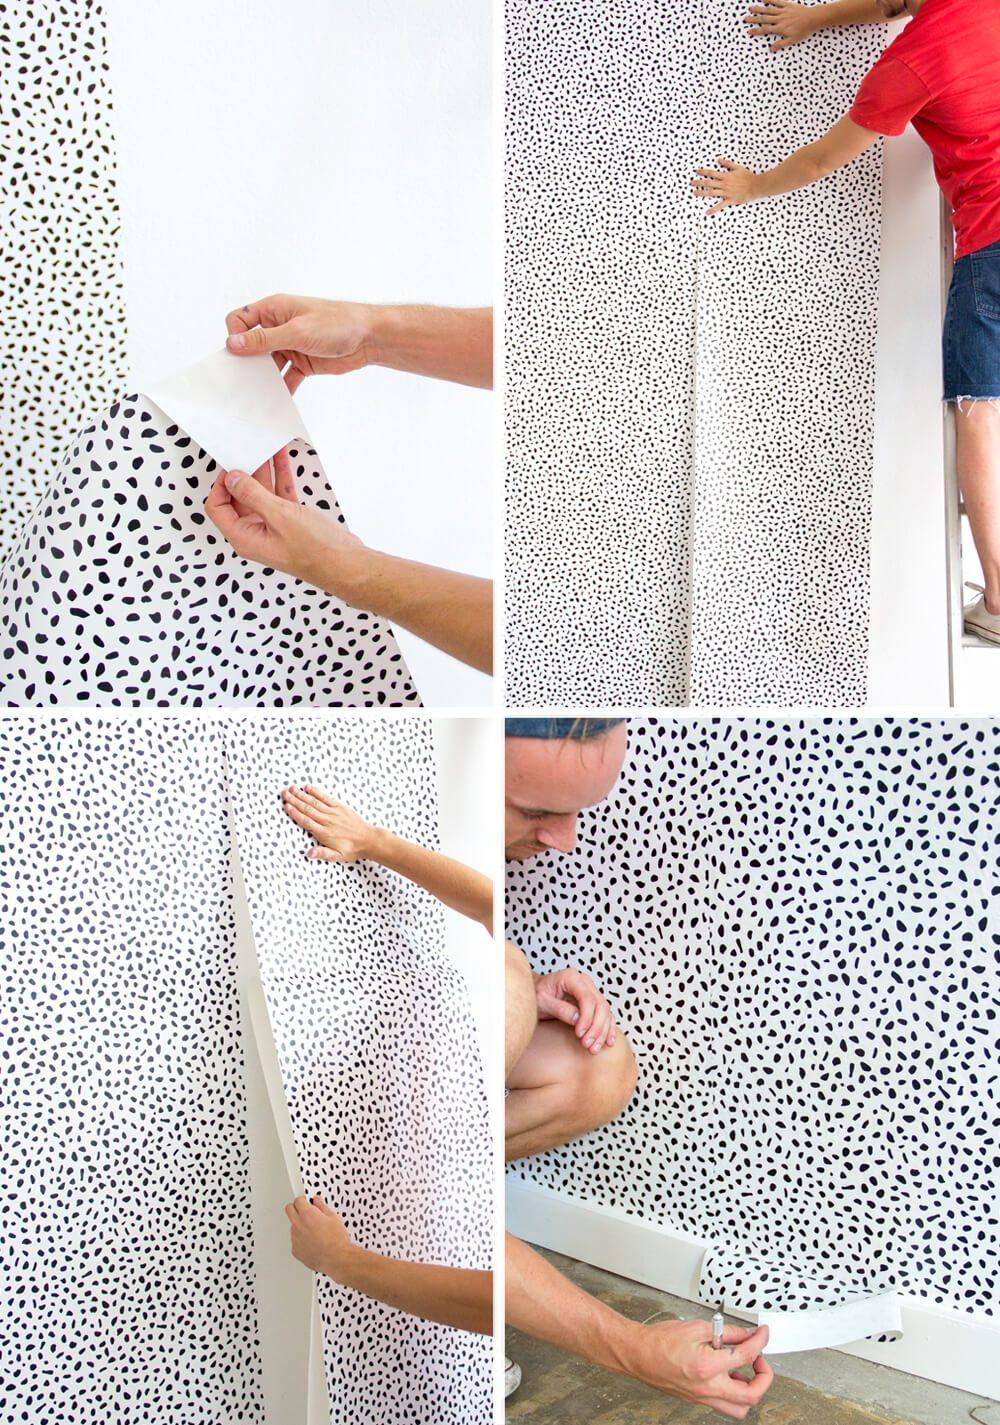 Temporary Wall Paper emily henderson - how to put up temporary wallpaper | diy projects